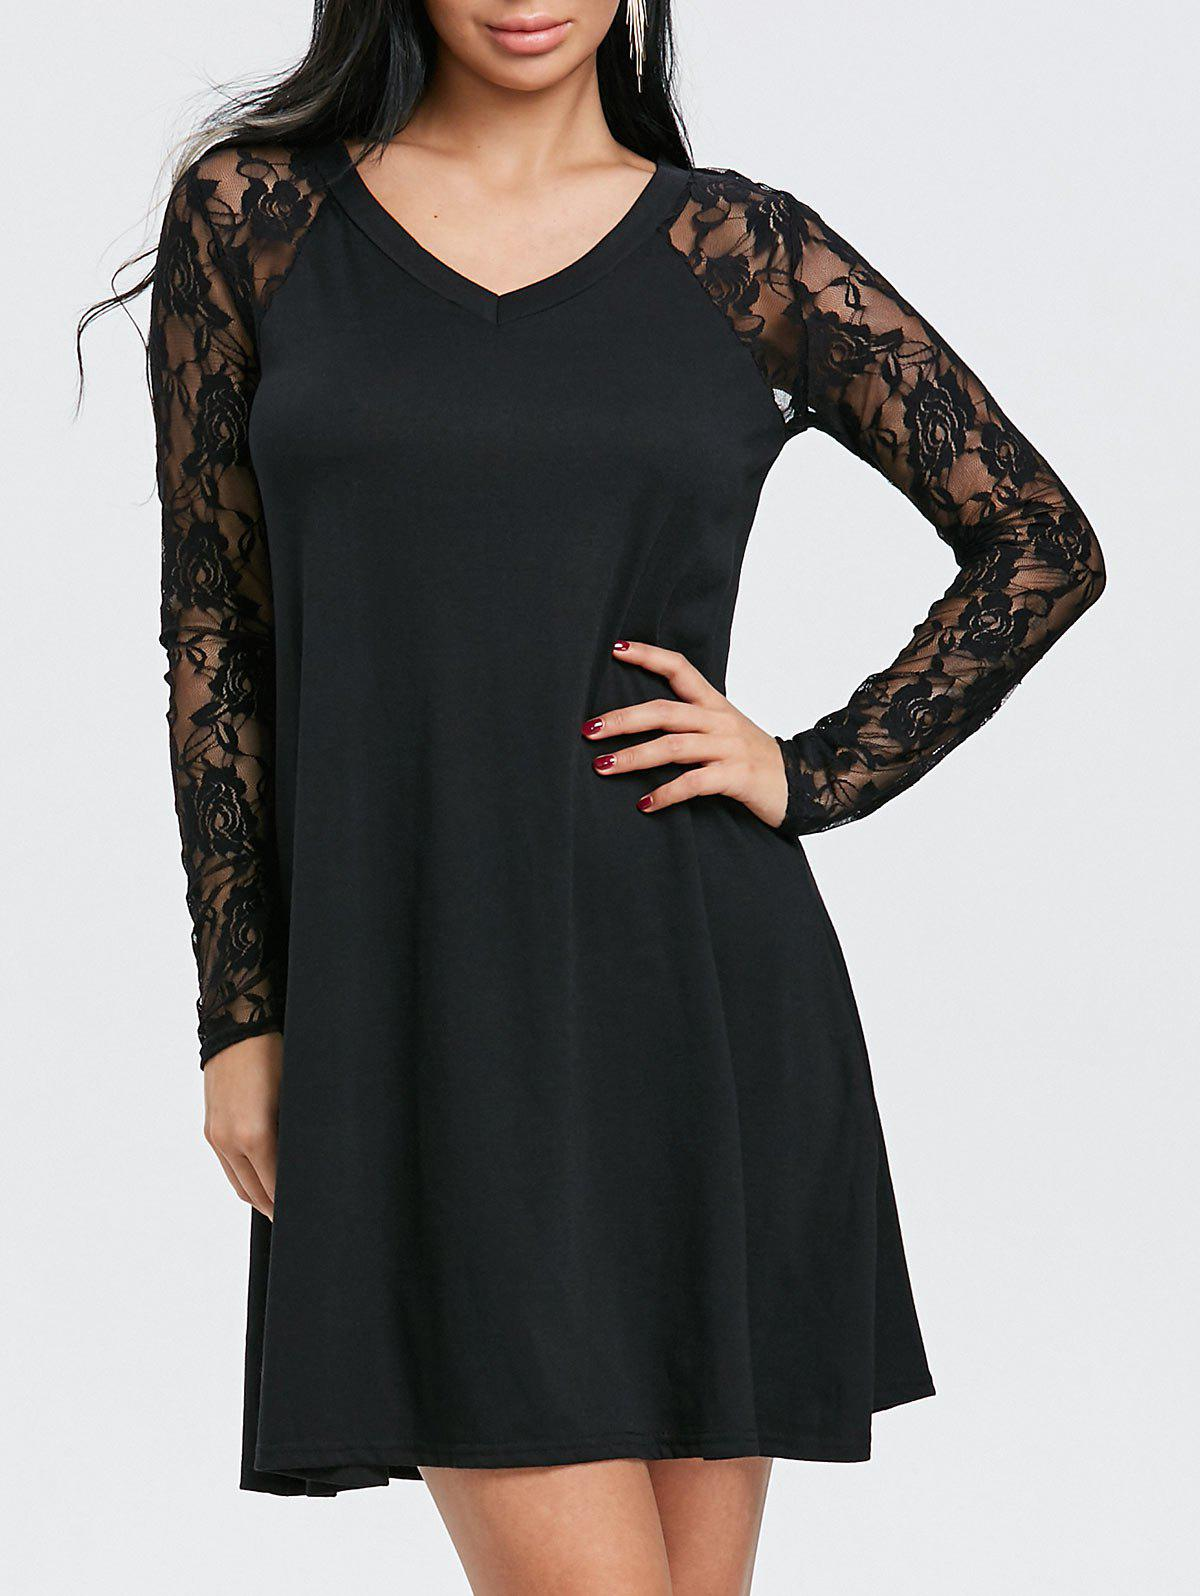 V Neck Floral Lace Panel Tunic Dress - BLACK M